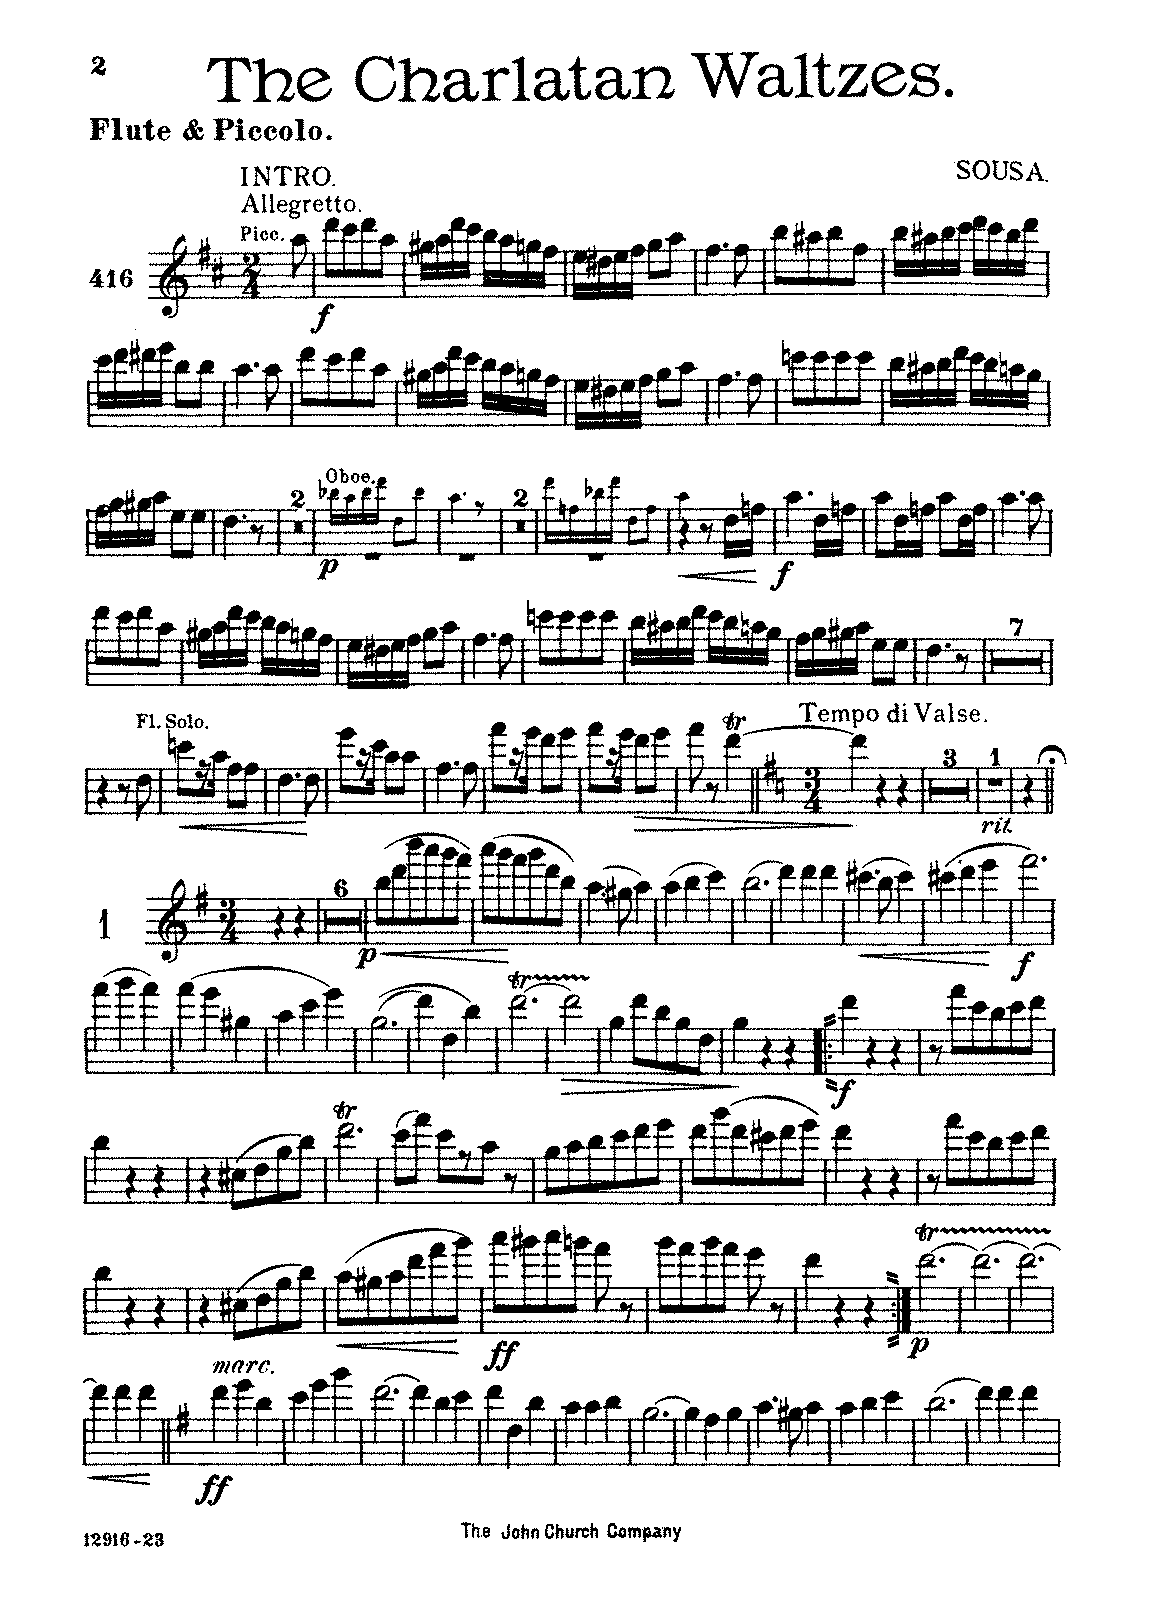 PMLP39986-JPSousa The Charlatan Waltzes orchparts.pdf